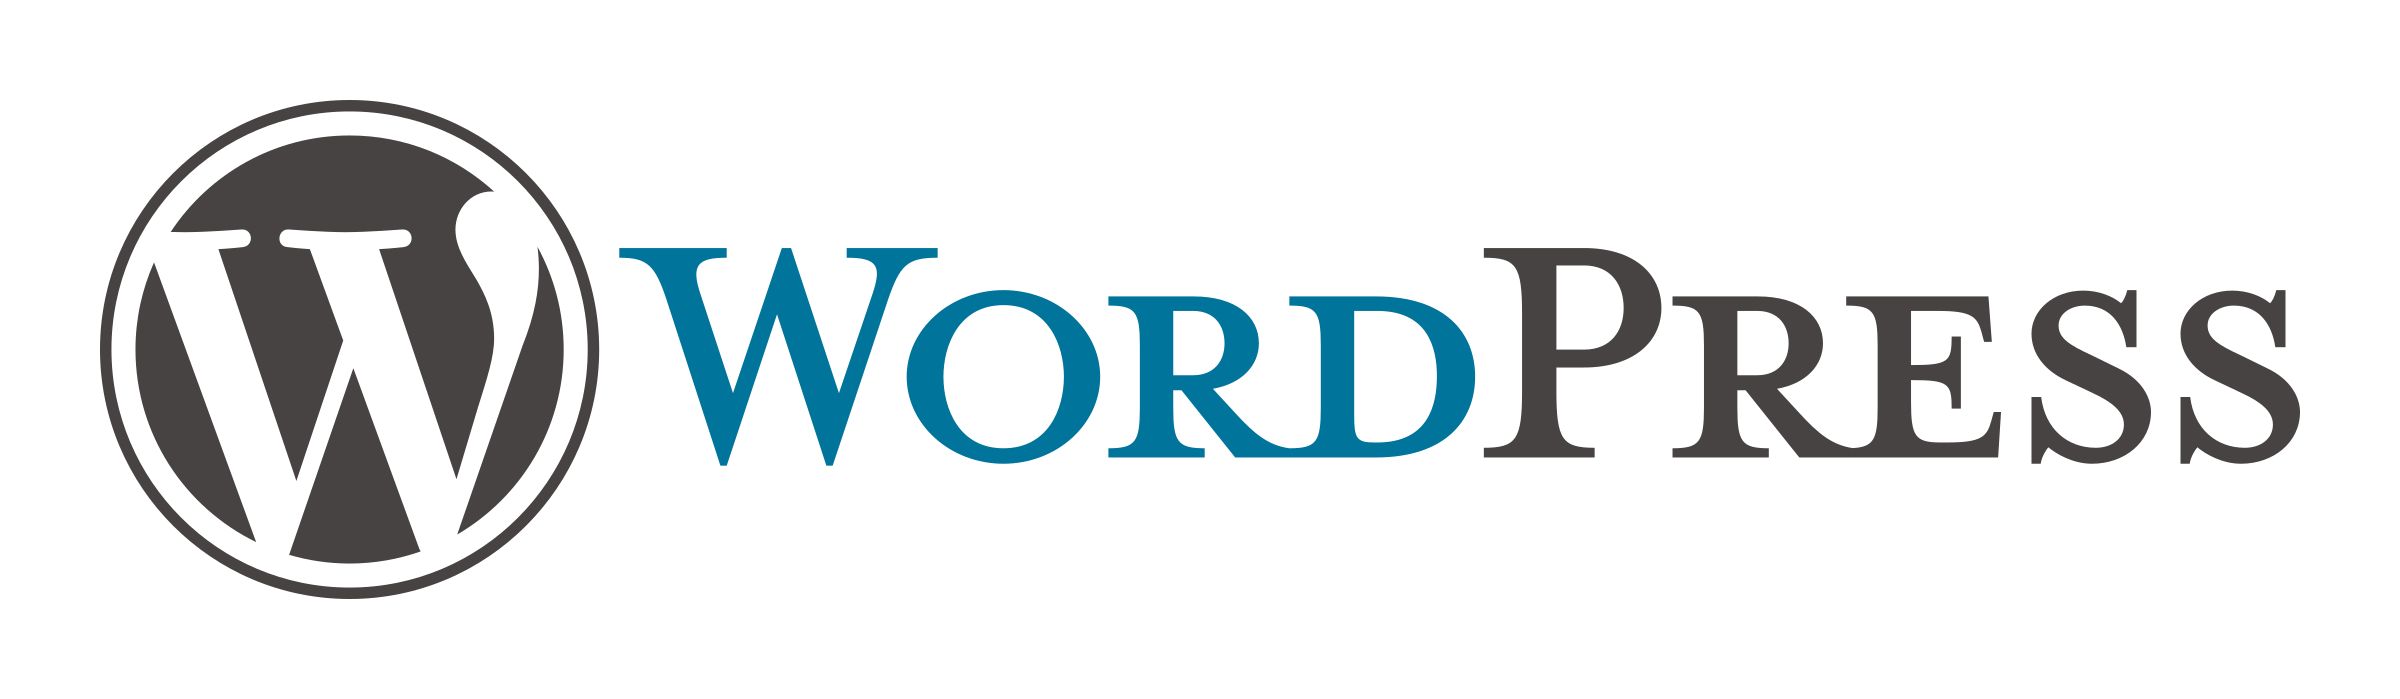 WordPress-color-logo-with-text-standard-transparent